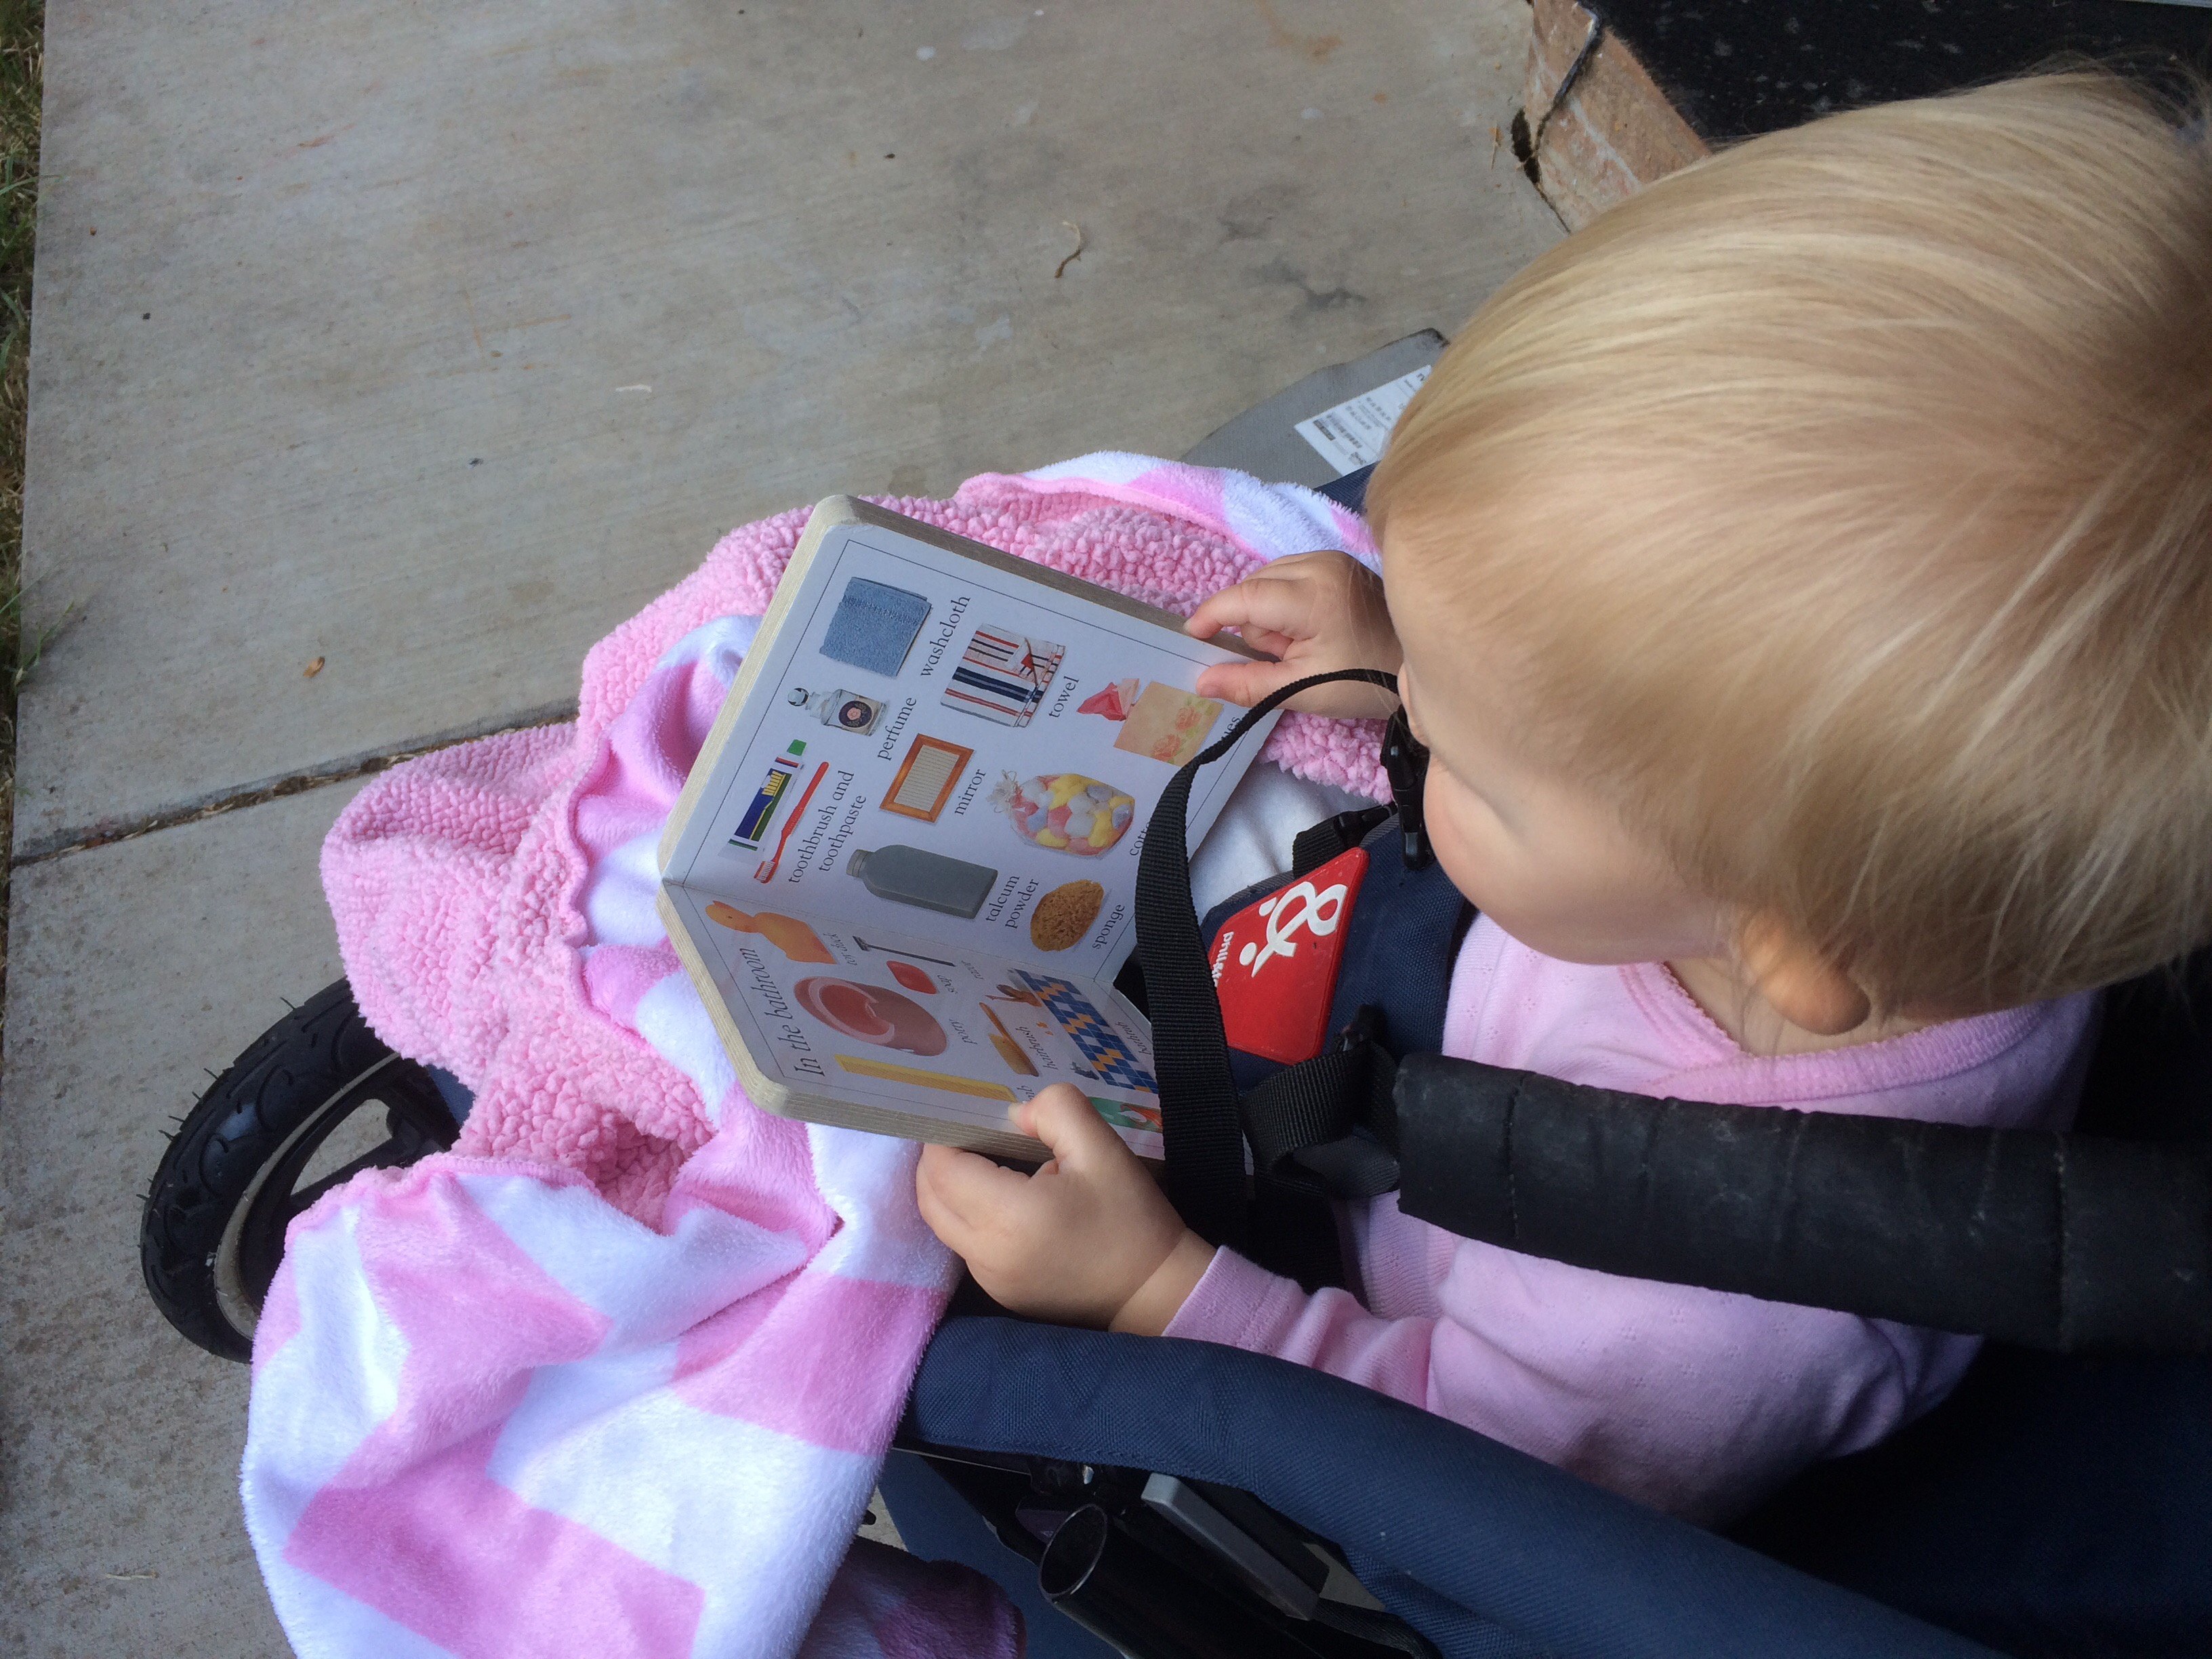 While reading she will sometimes babel to herself.